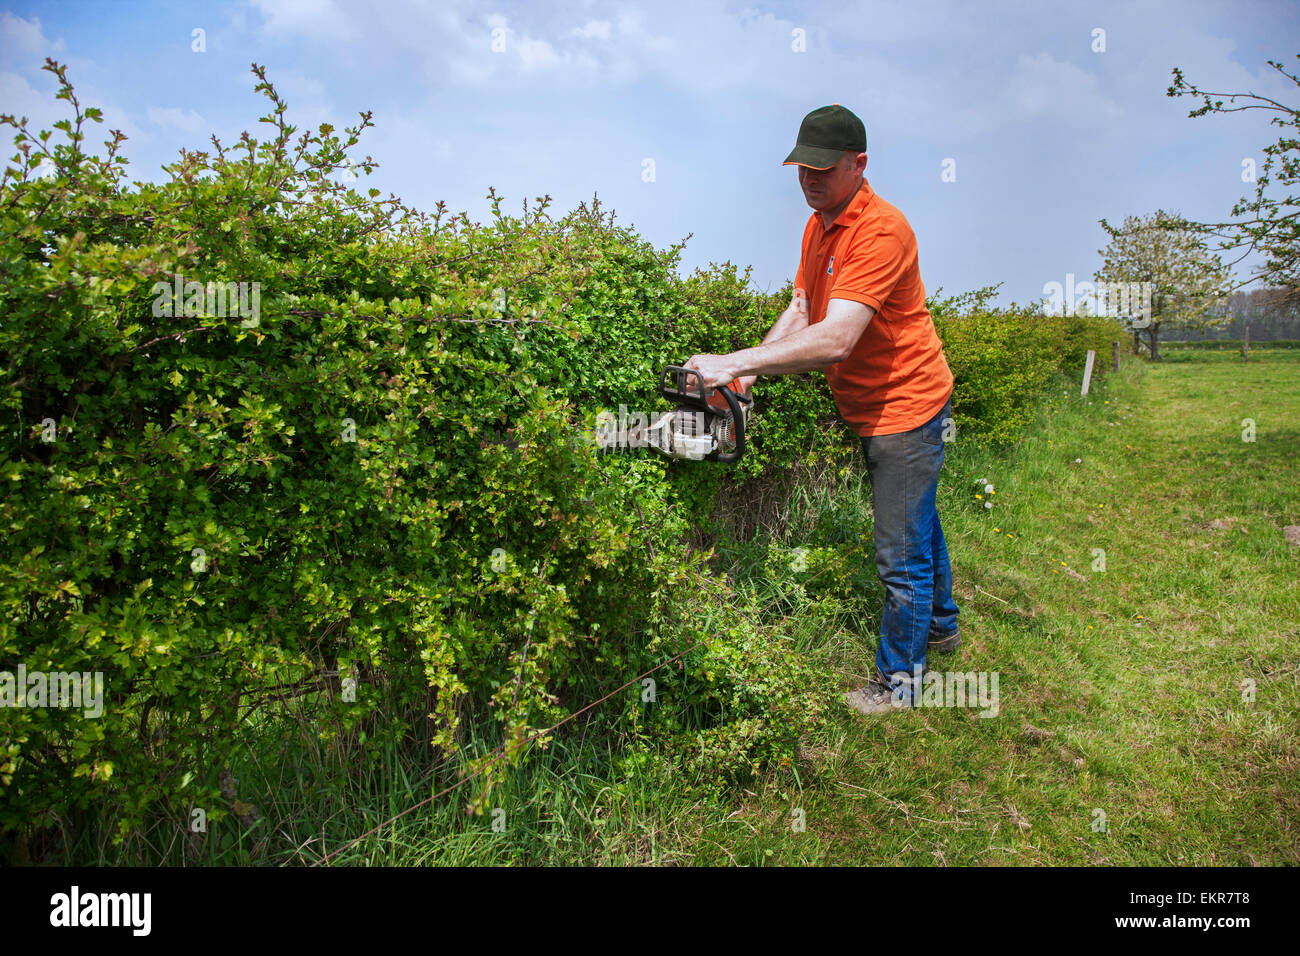 Man trimming hedge with gasoline-powered hedge trimmer - Stock Image